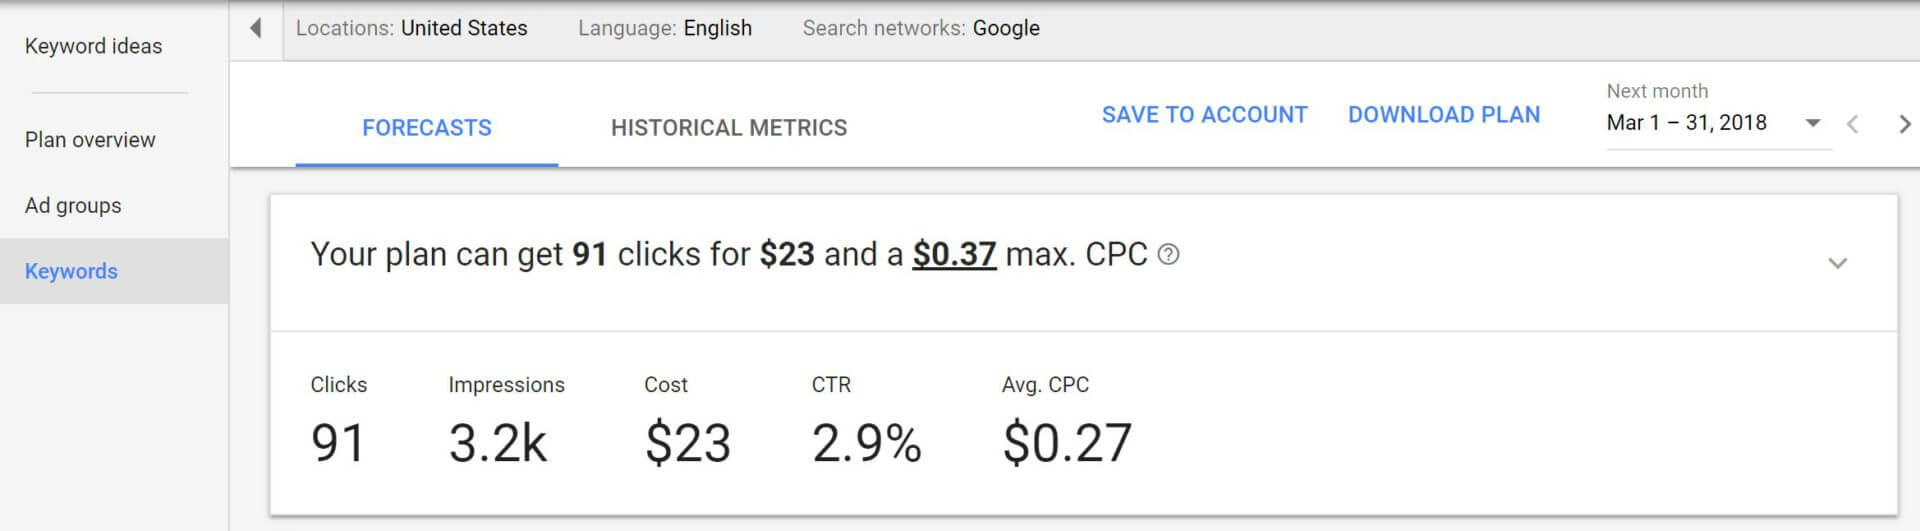 adwords-keyword-planner-forecast-new